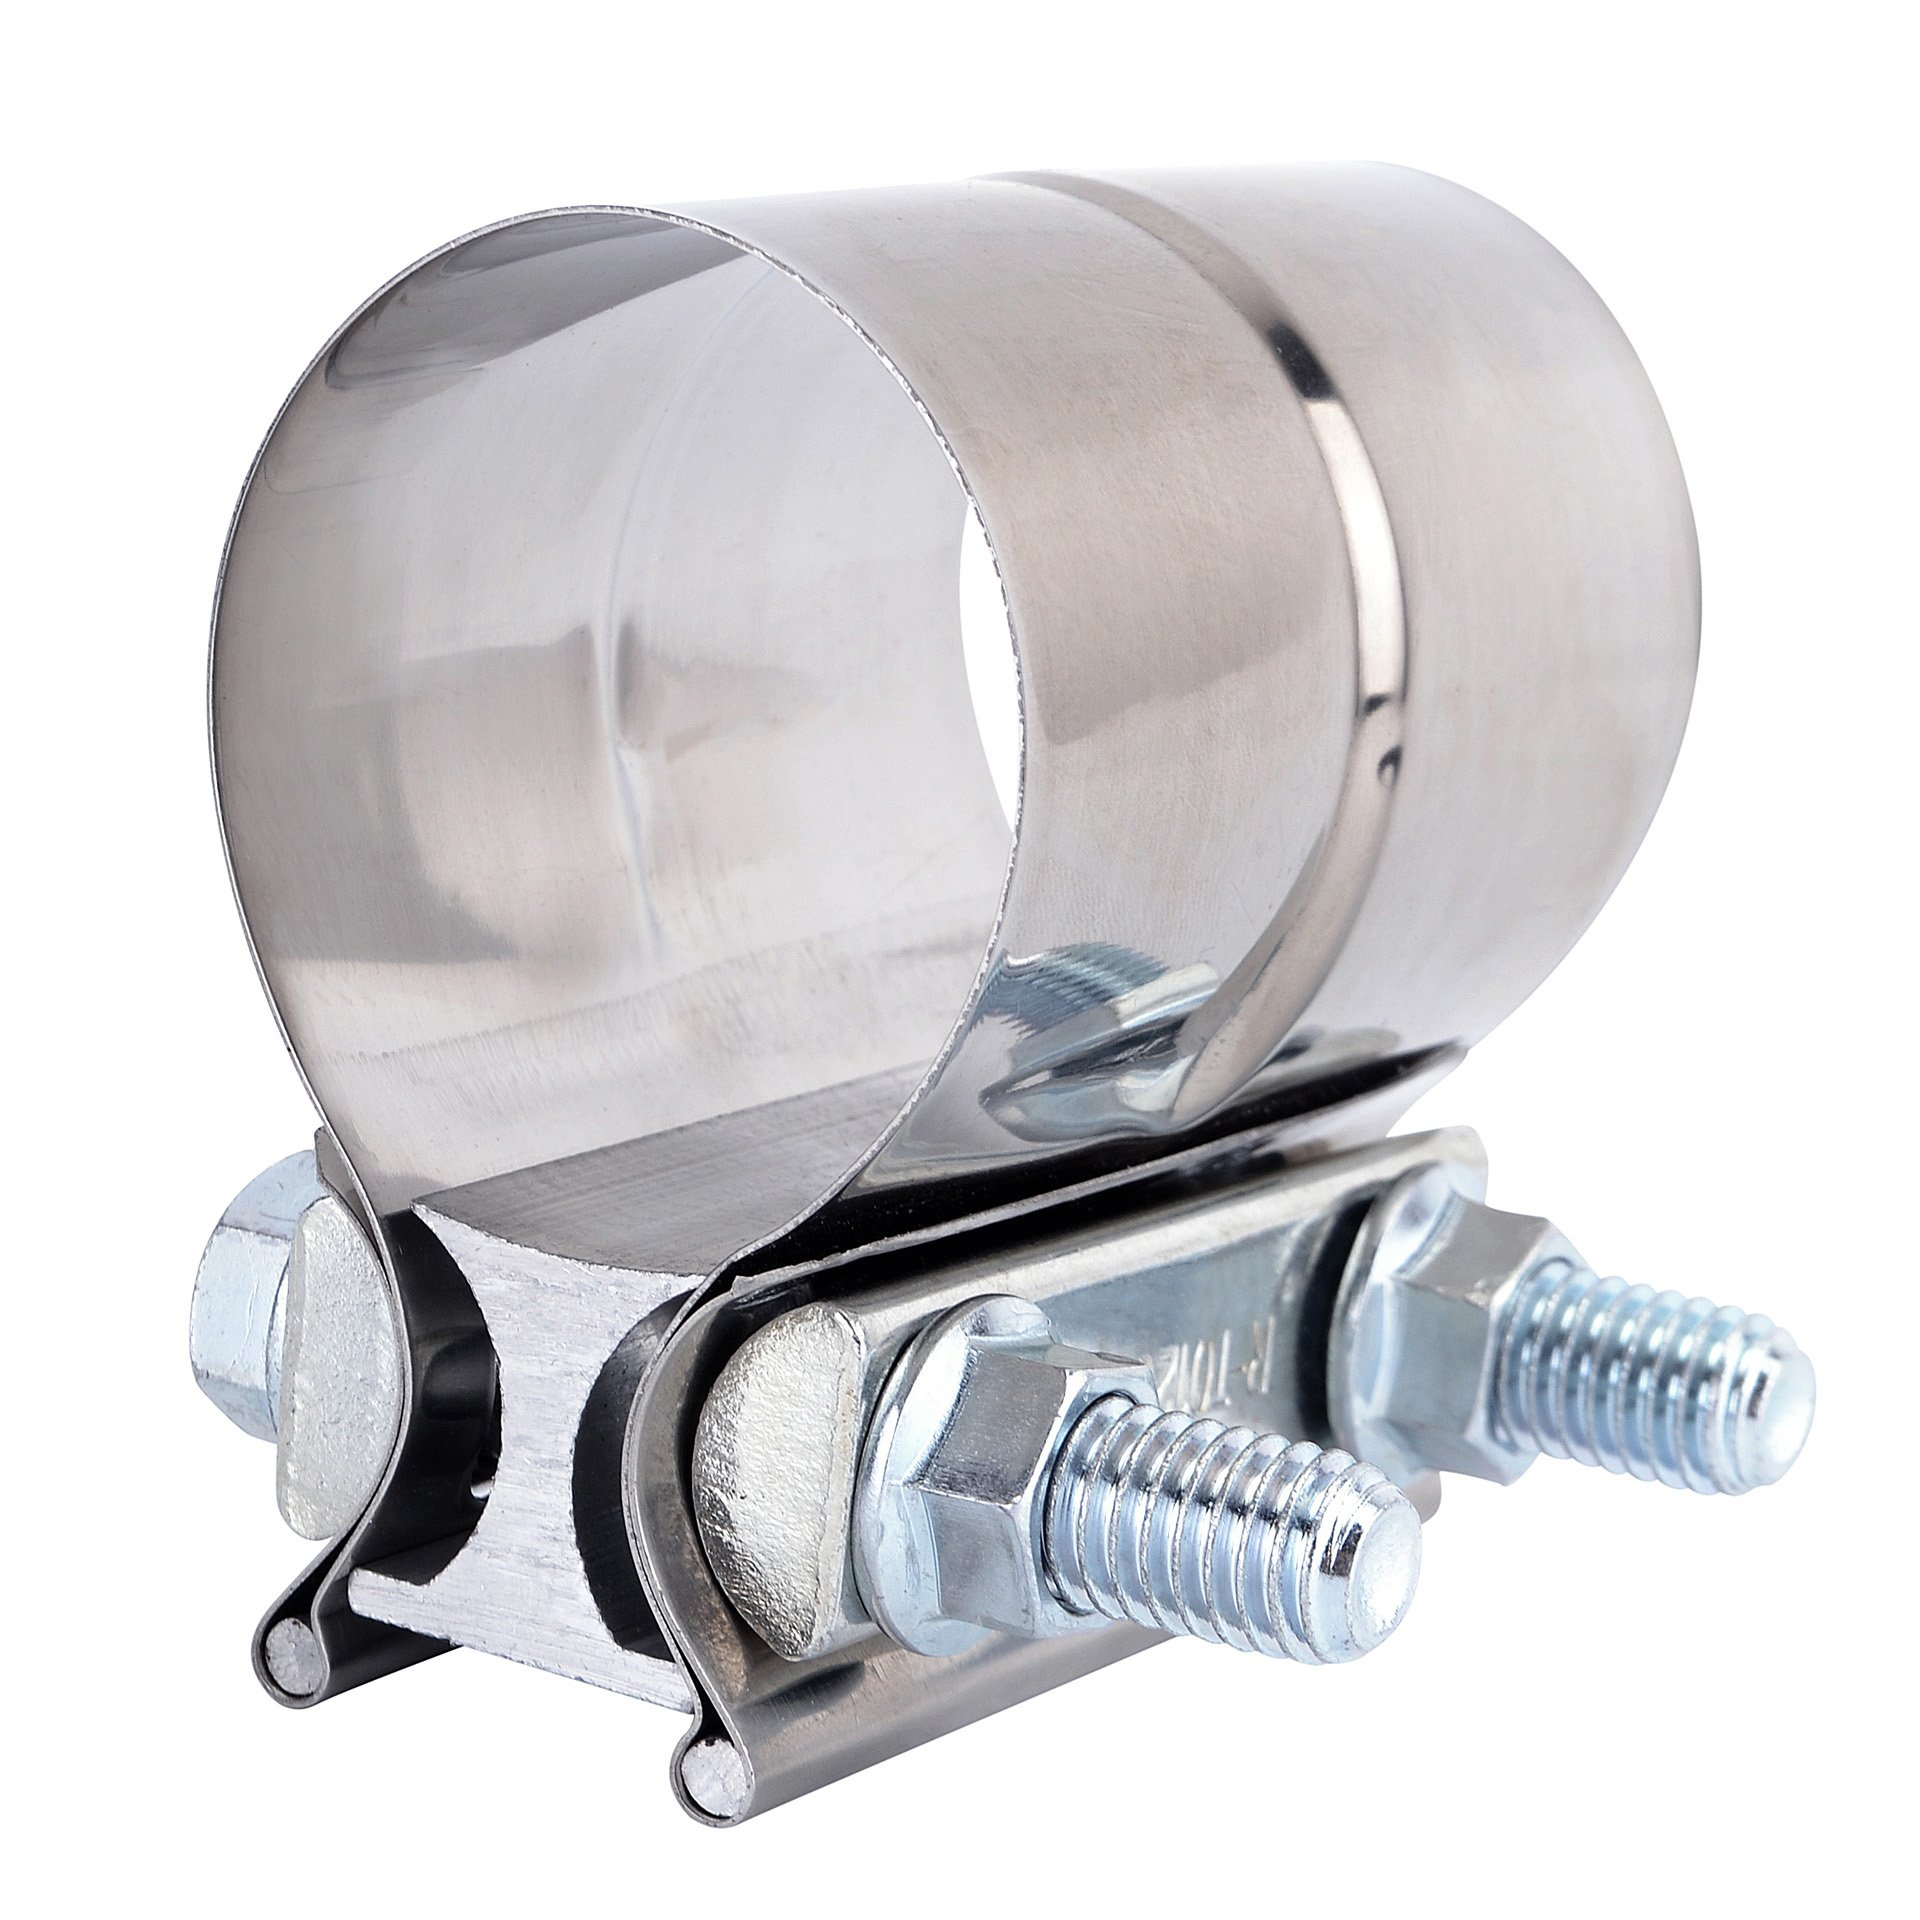 Evilenergy 4'' Lap Joint Exhaust Band Clamp Preformed 304 Stainless Steel